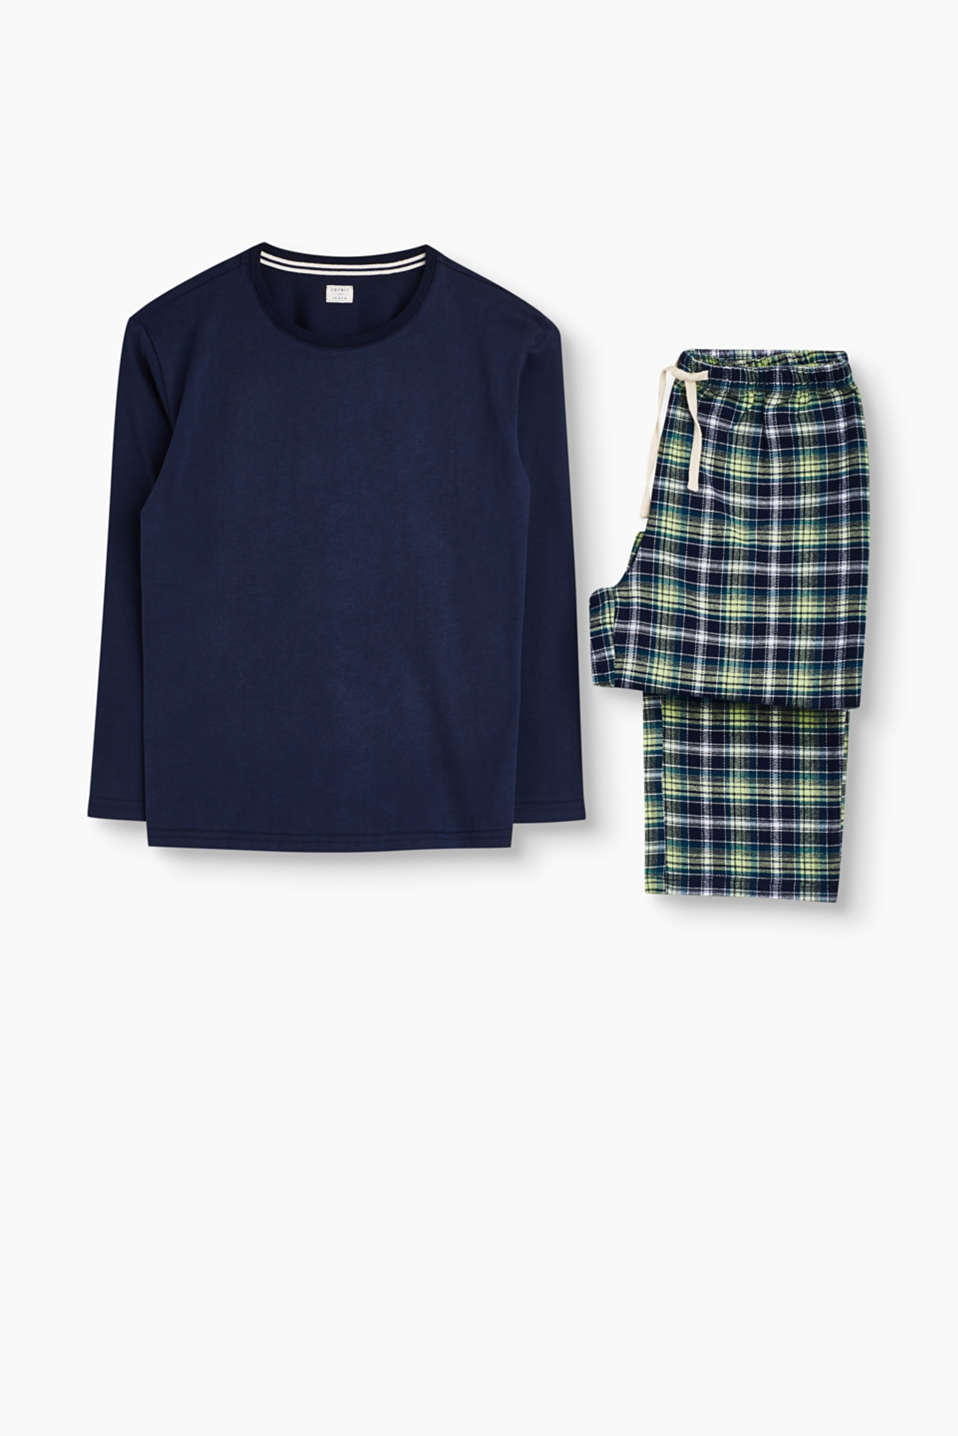 These pyjamas in jersey and checked flannel are incredibly comfortable and especially soft on the skin.